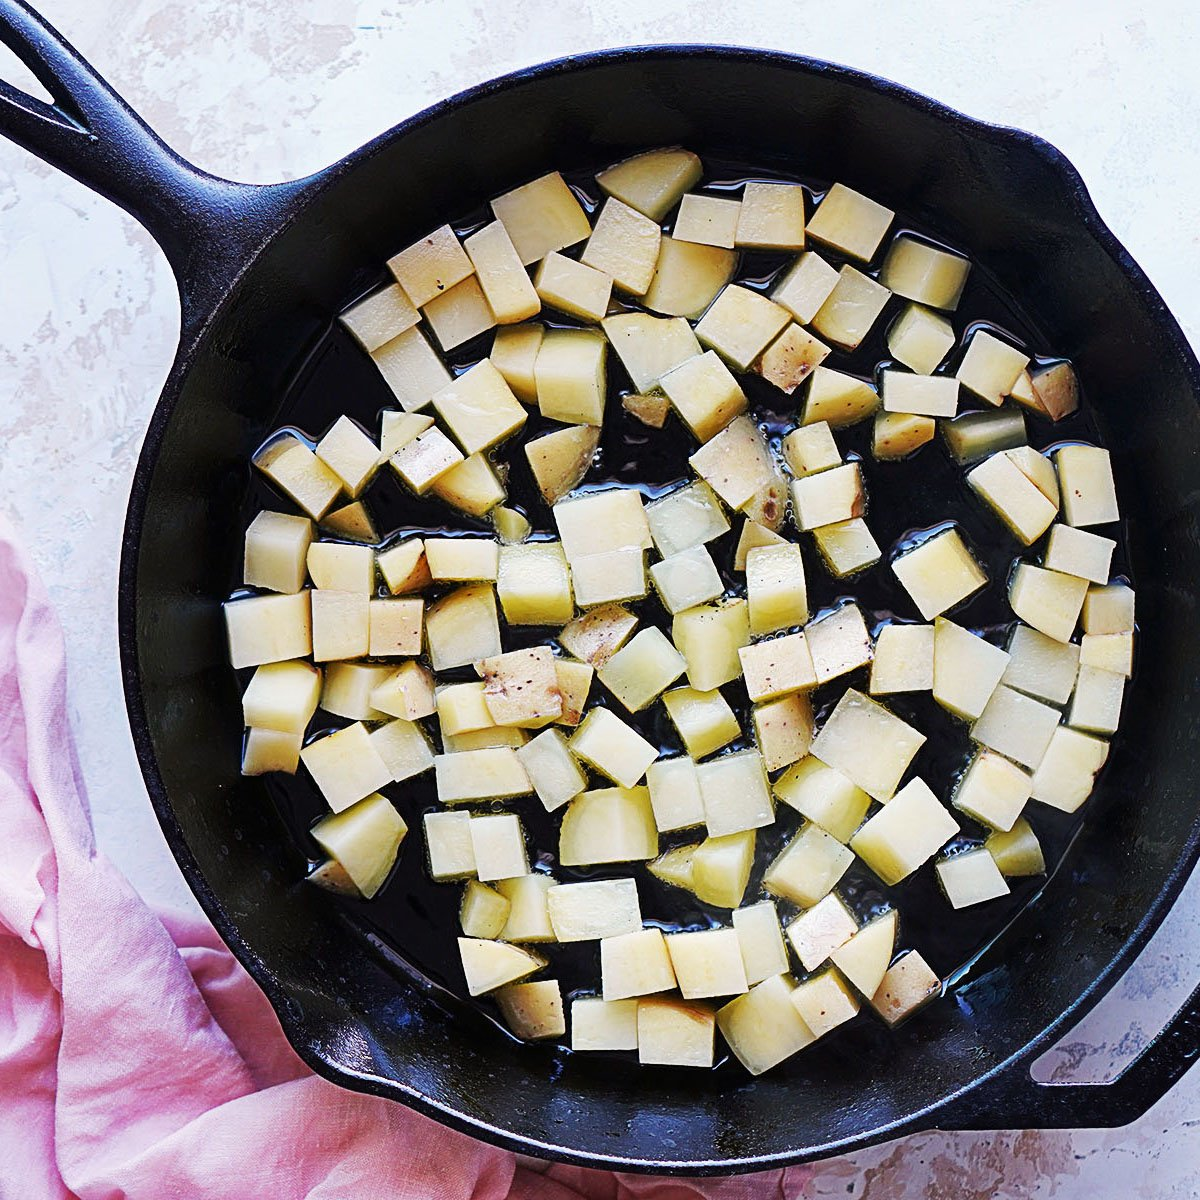 Raw cubed potatoes in a skillet